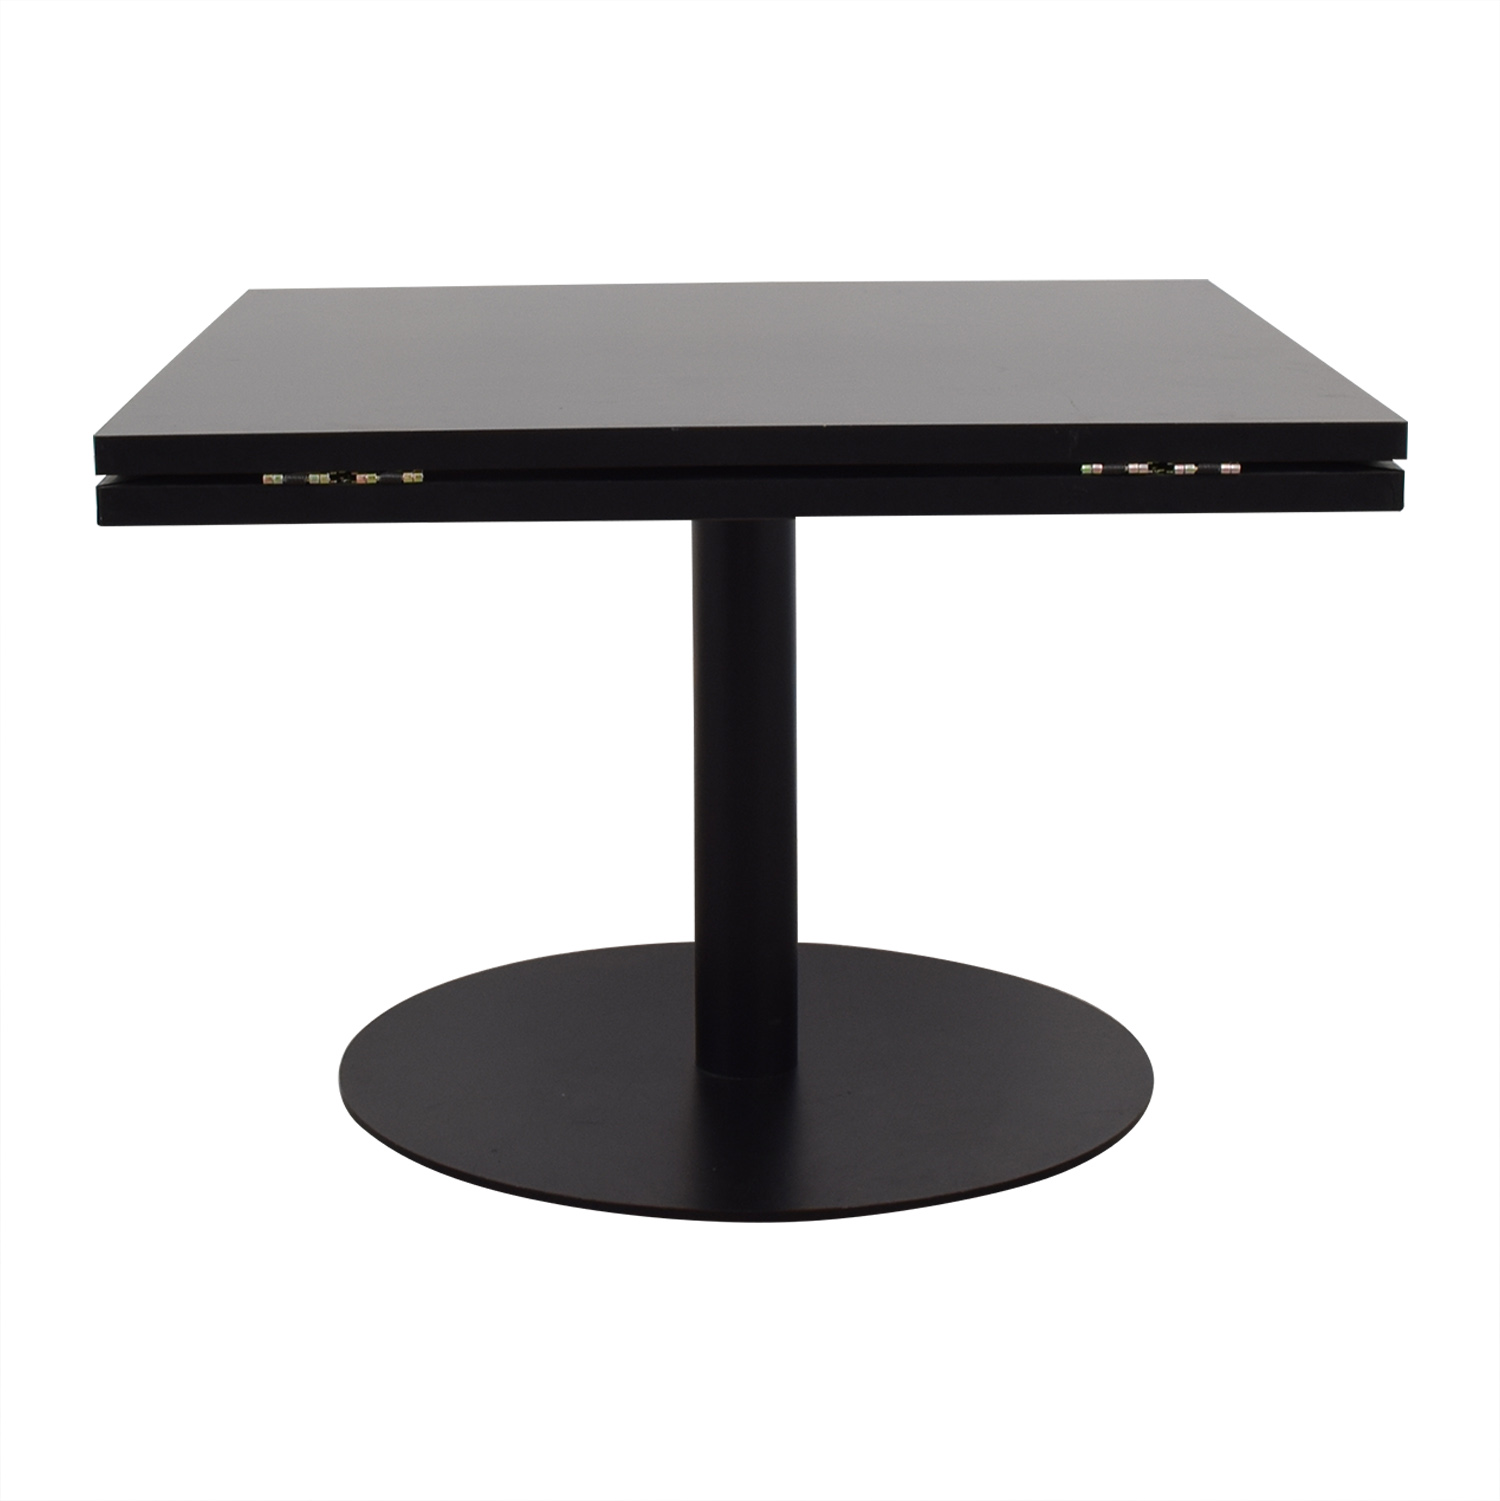 Black Square to Round Foldable Sides Table price